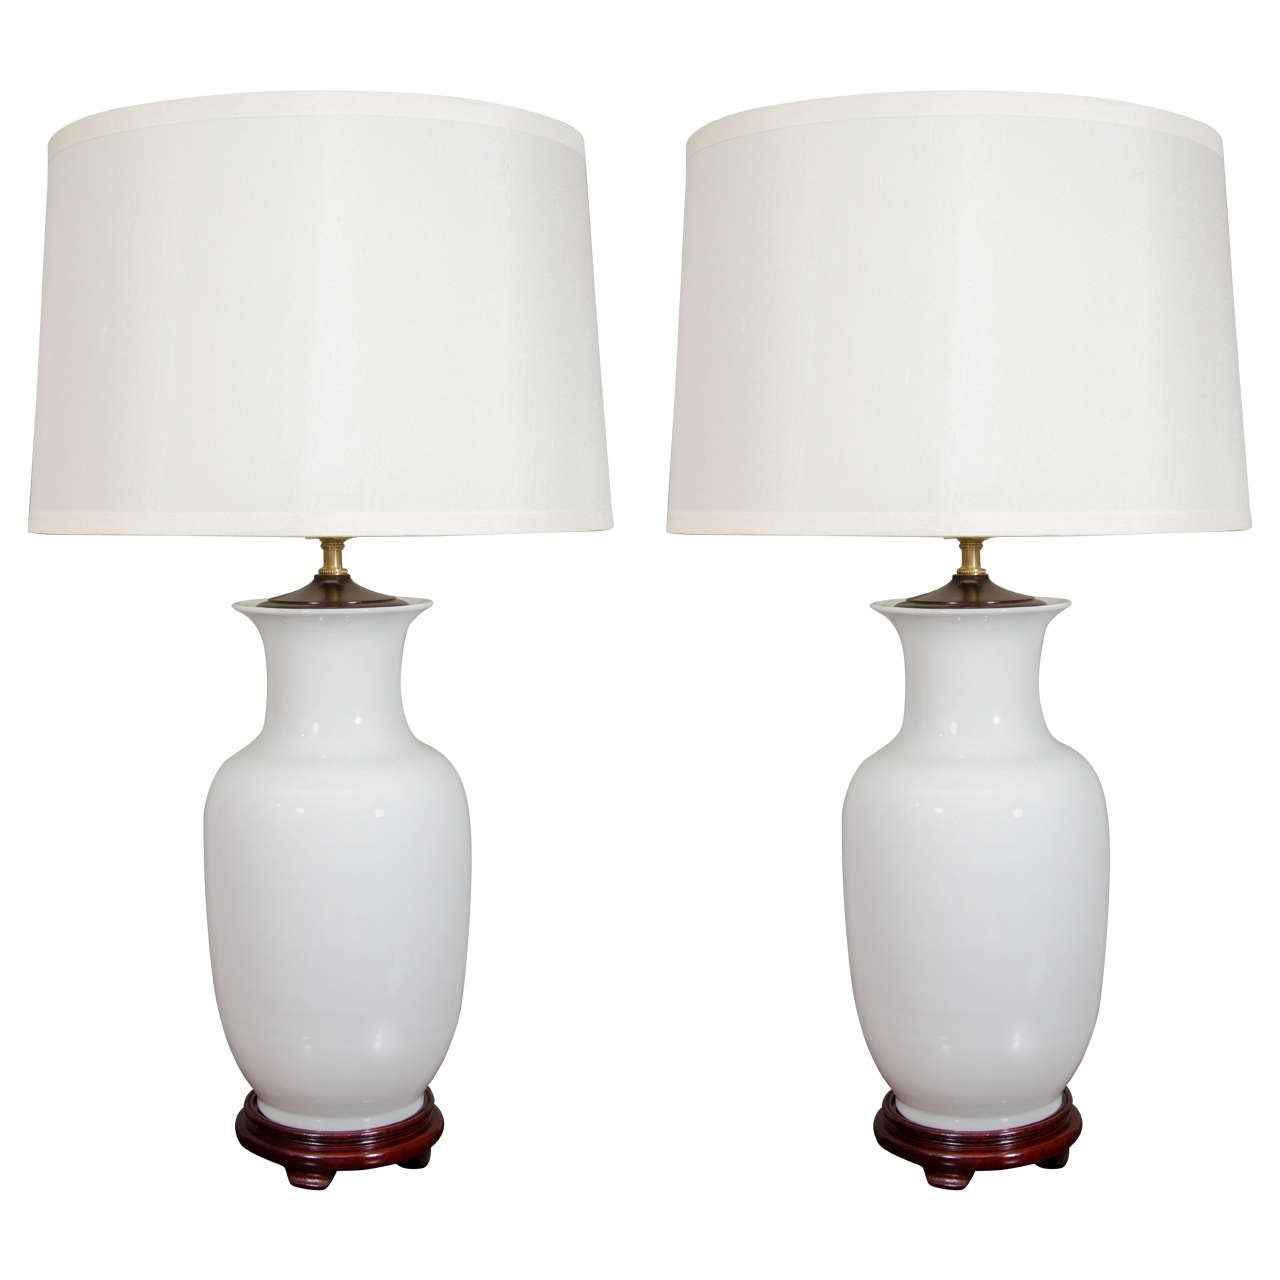 Pair of Chinese Blanc De Chine Porcelain Vases, Wired as Lamps